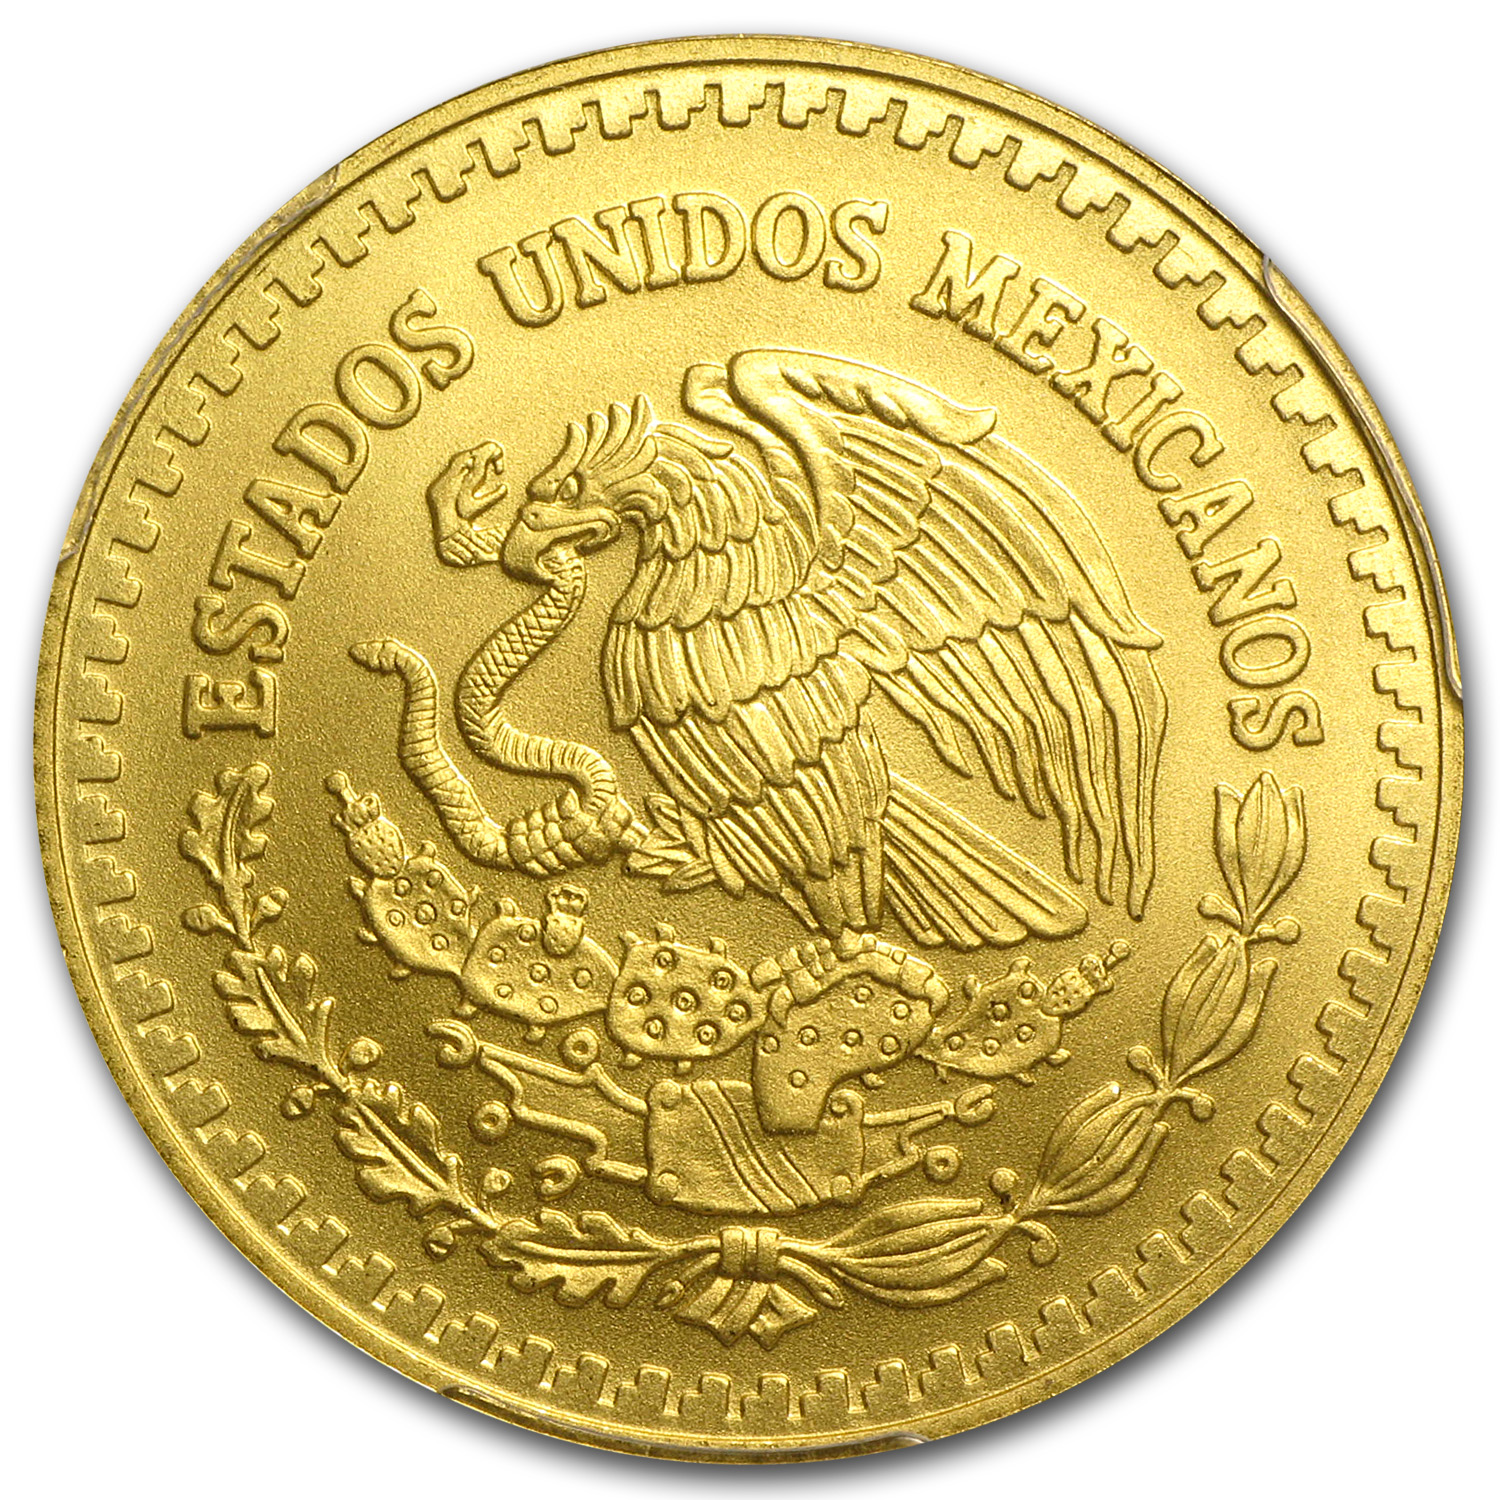 2013 Mexico 1/2 oz Gold Libertad MS-70 PCGS